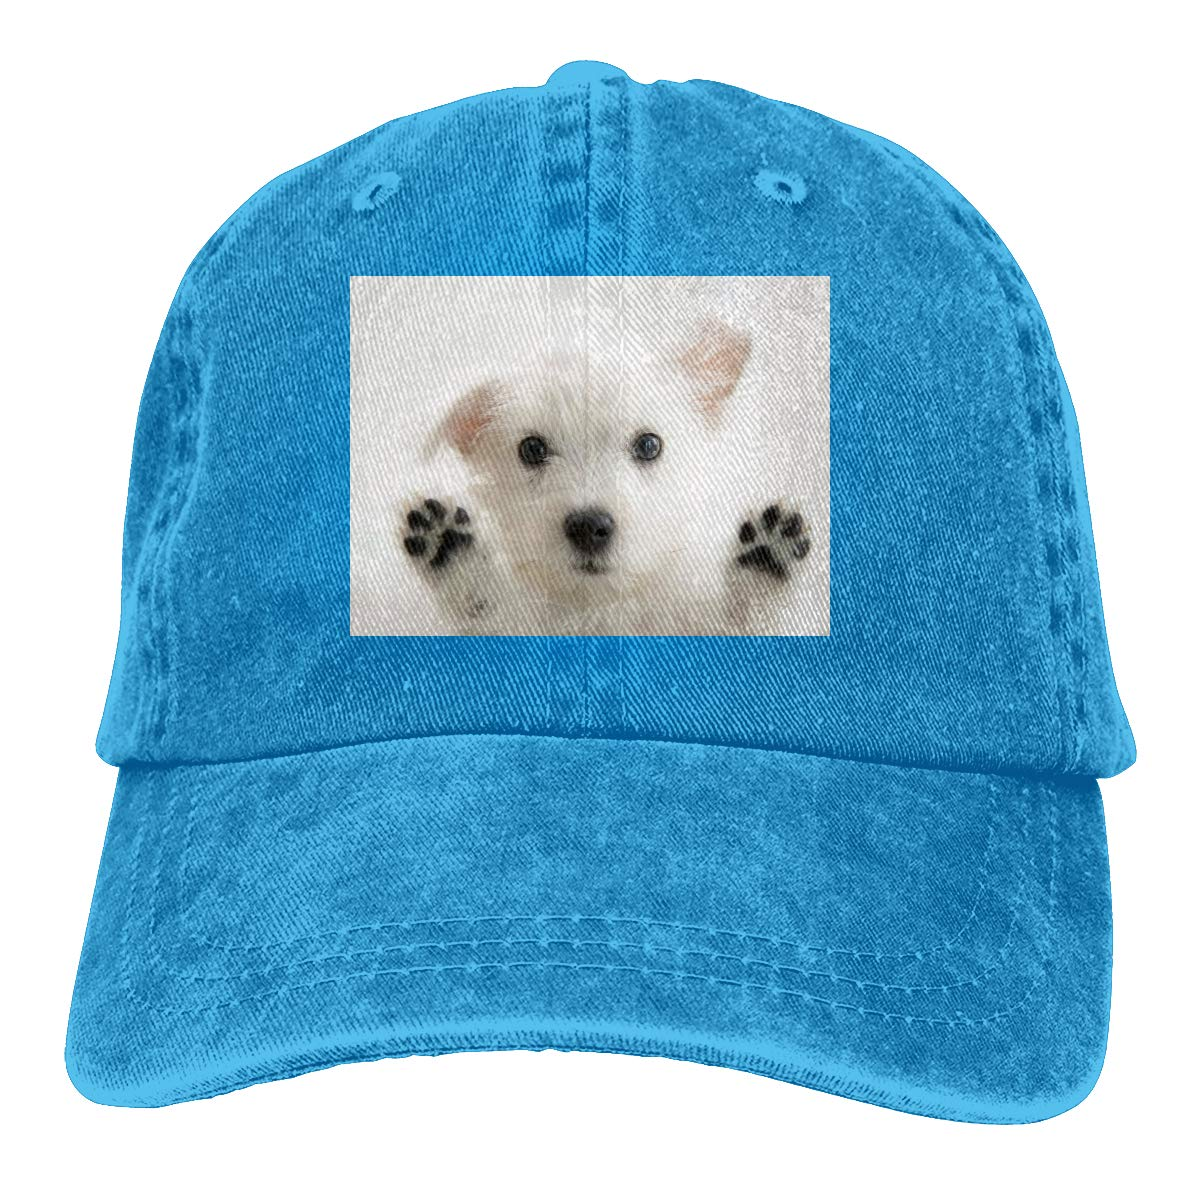 Qbeir Adult Unisex Cowboy Cap Adjustable Hat Cute Dog Puppy Cotton Denim